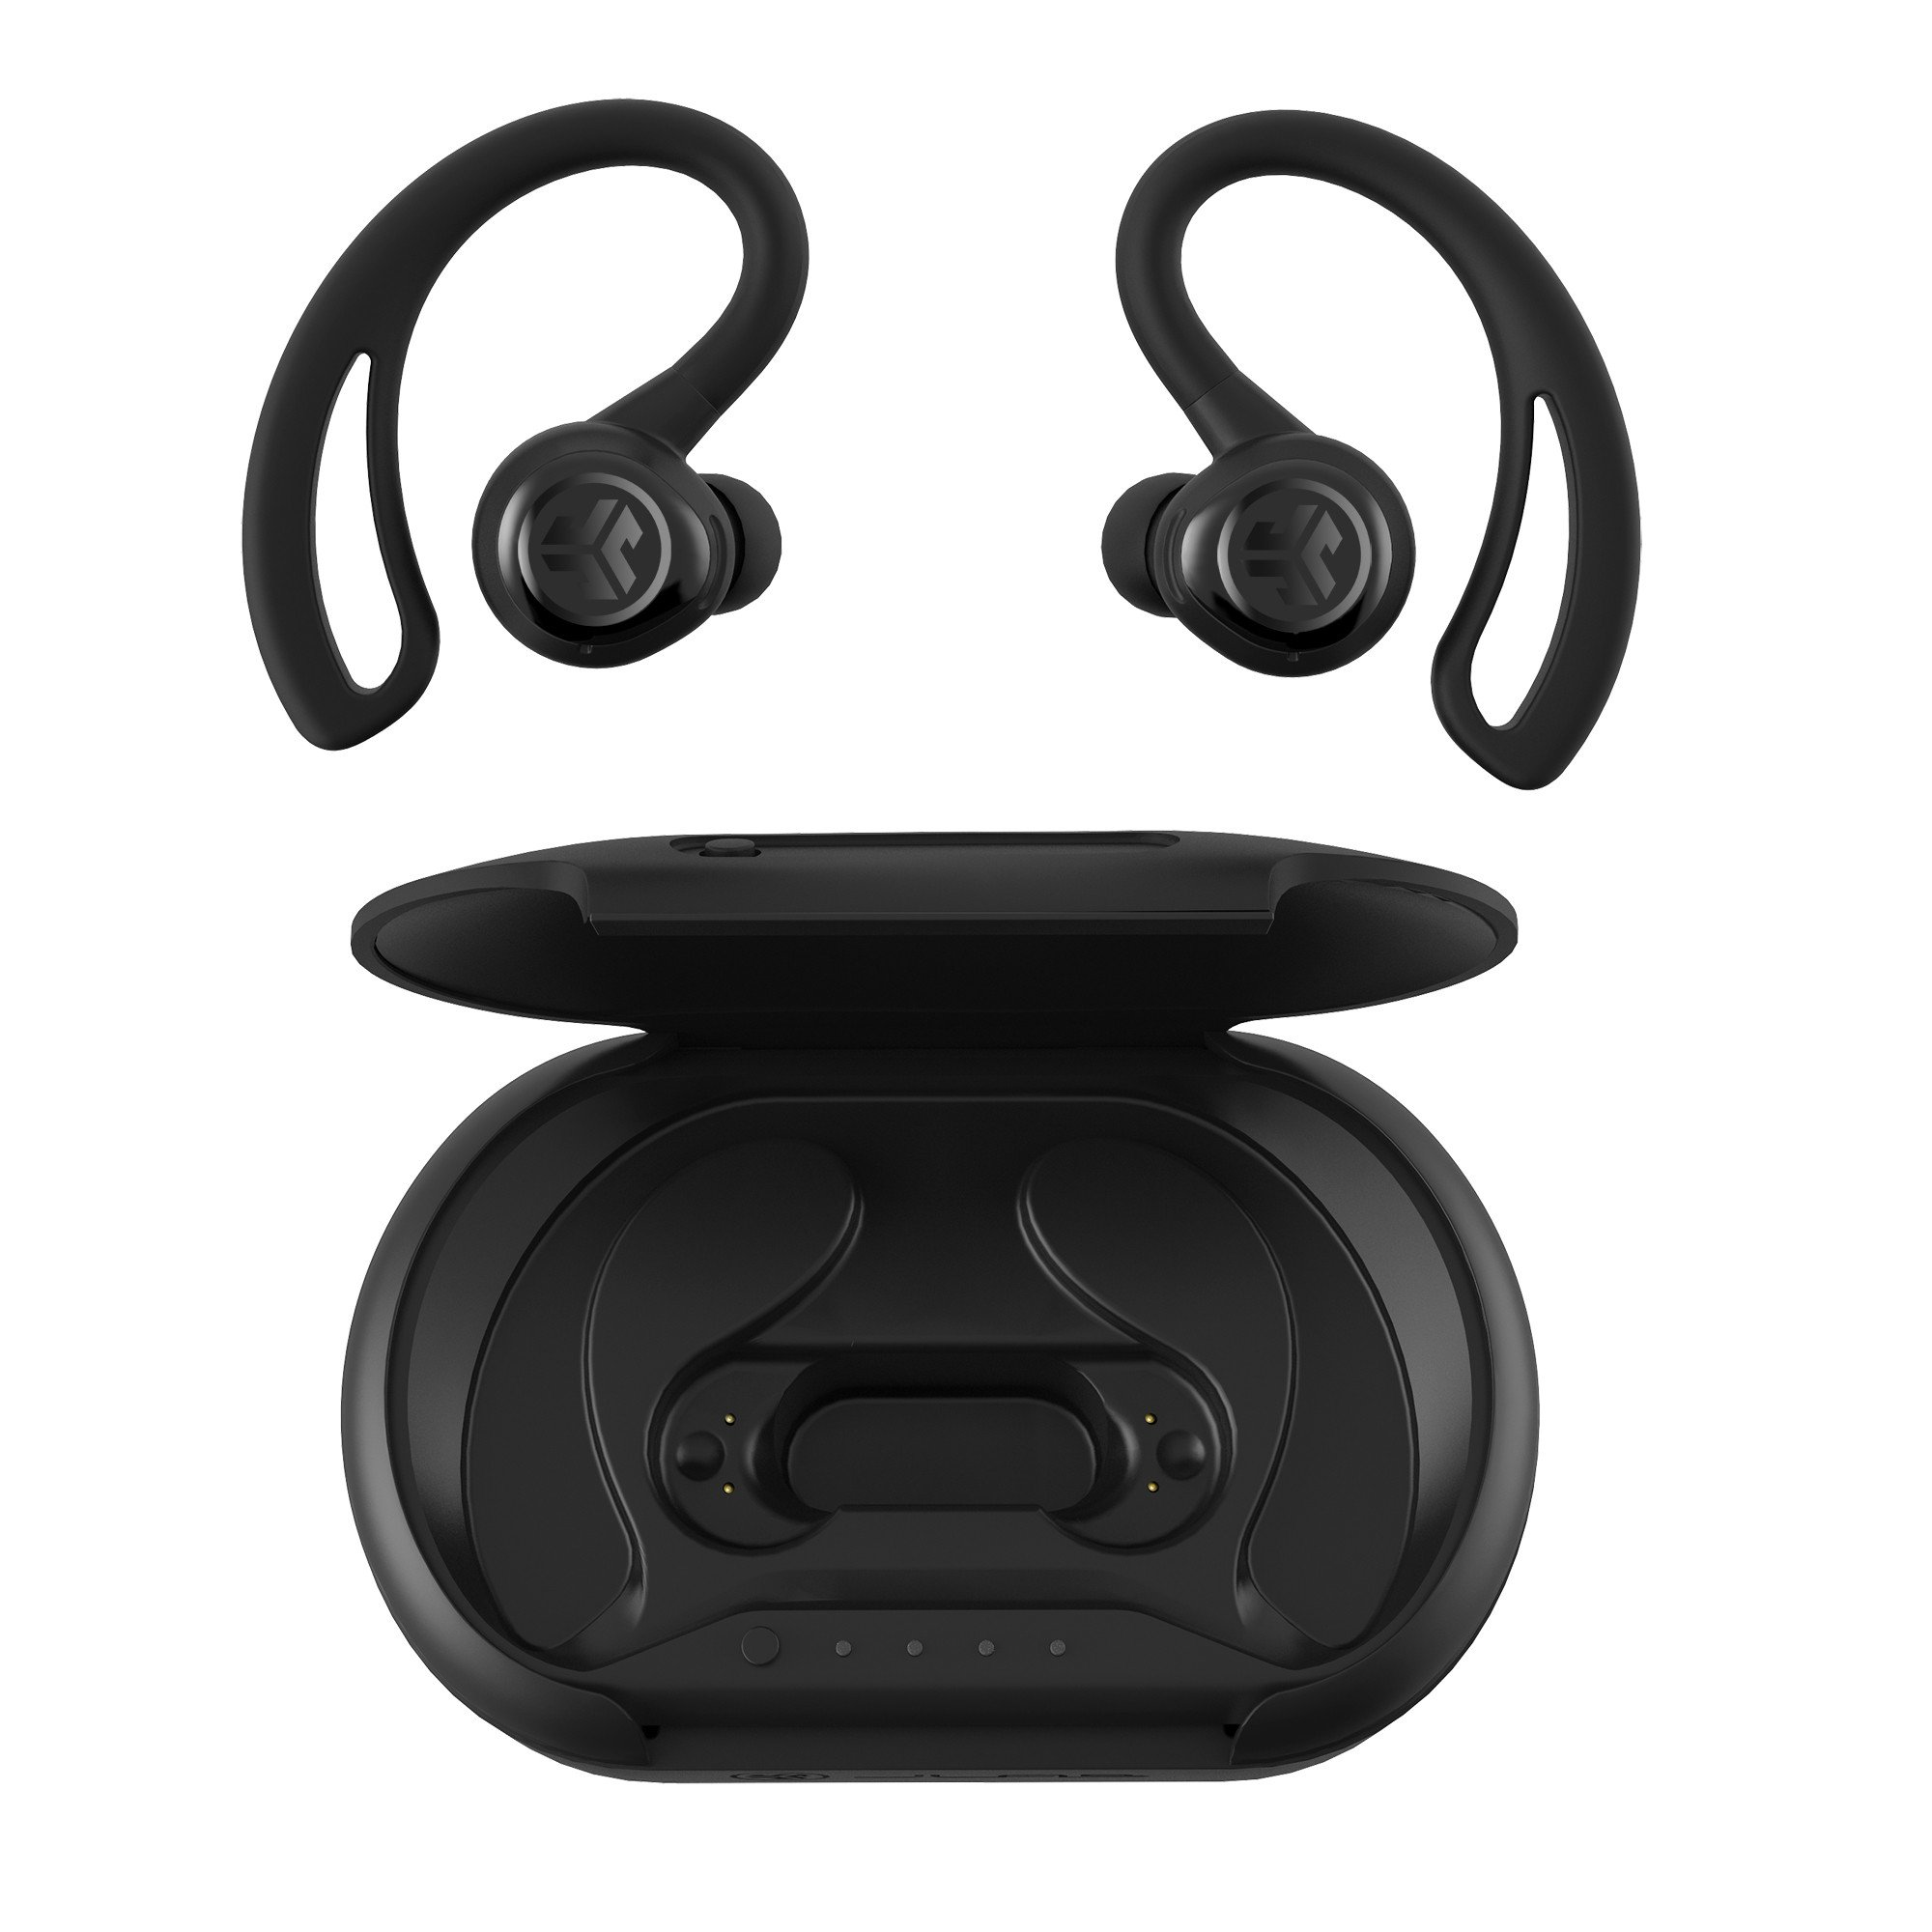 Epic Air True Wireless Sport Earbuds Charging Case Wireless Earbuds Earbuds Wireless Sport Earbuds